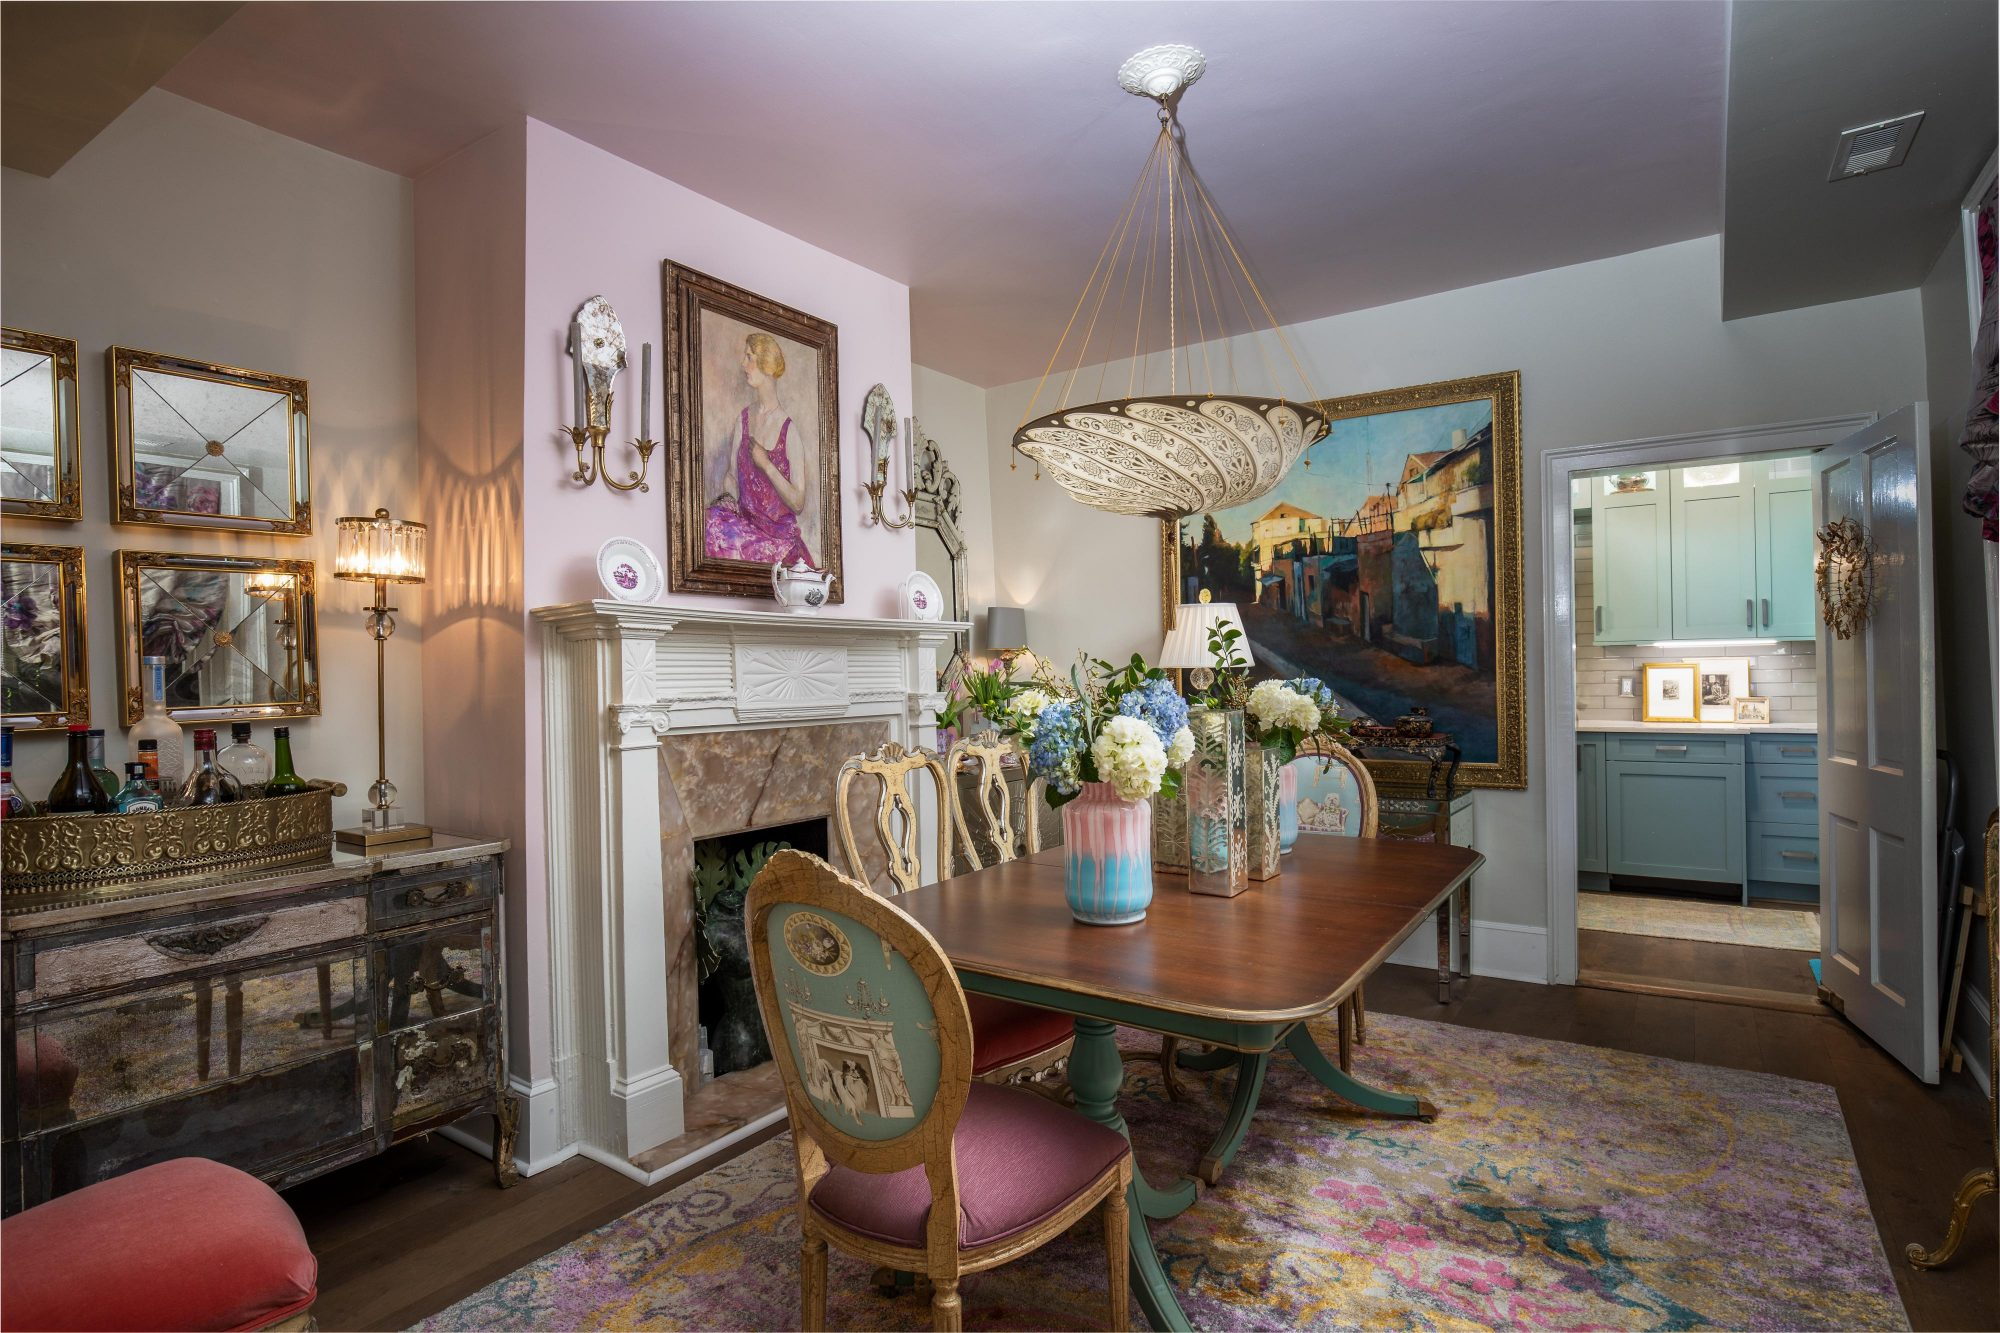 17 Waters House for Sale in Charleston